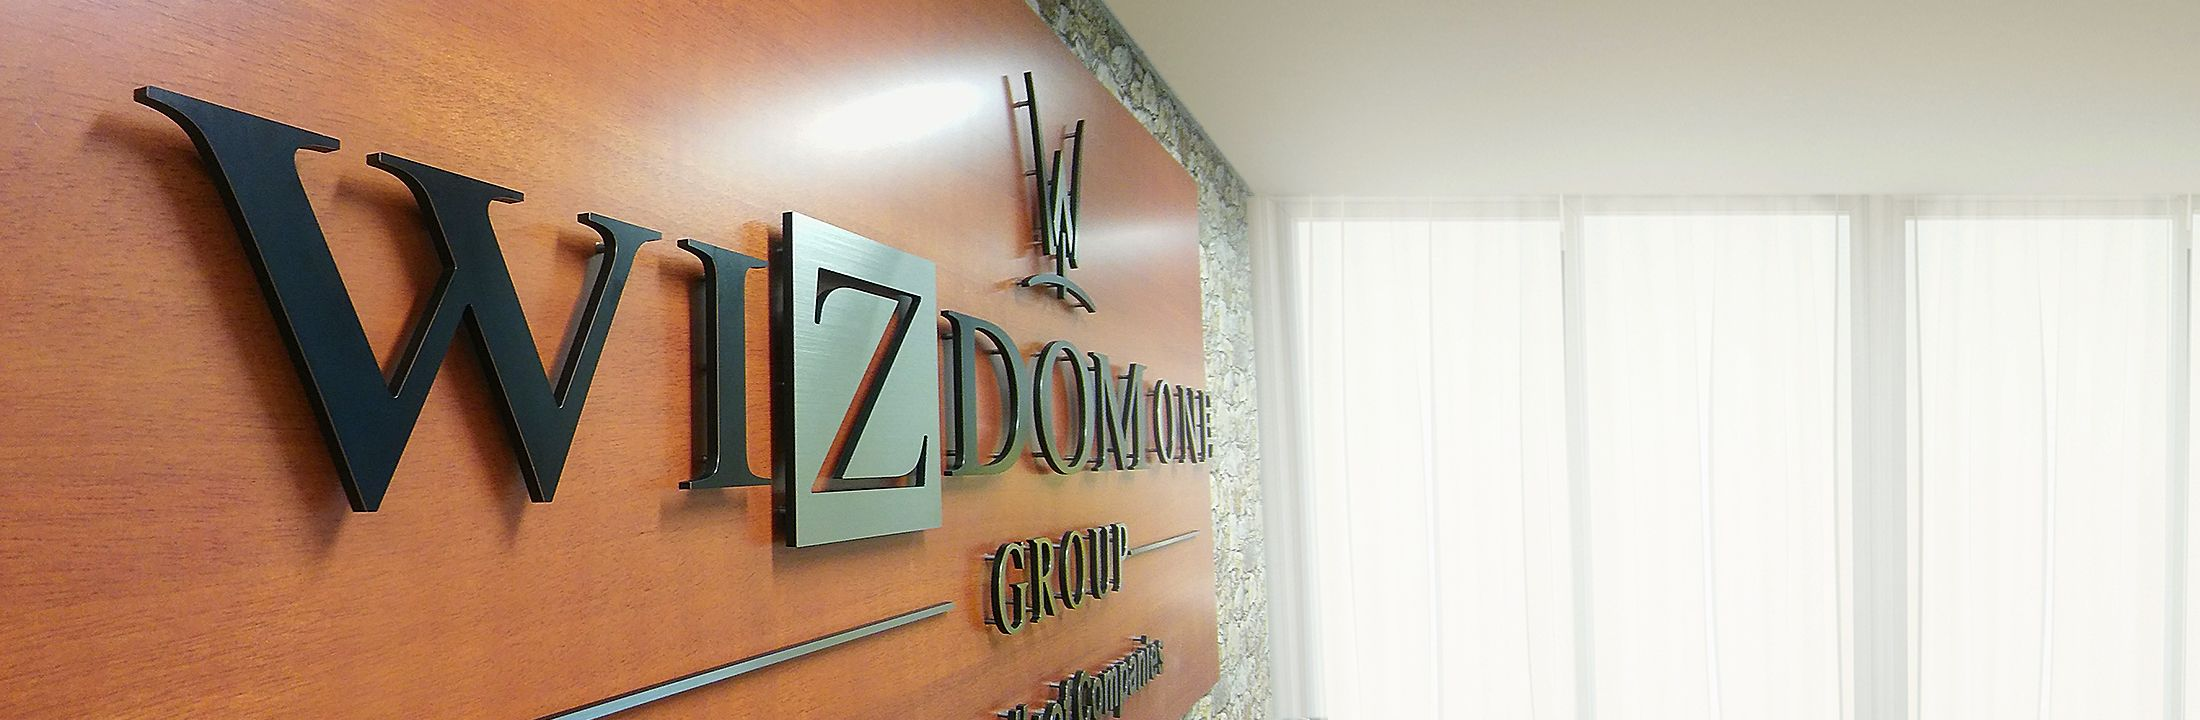 corporate signage with dimensional logo